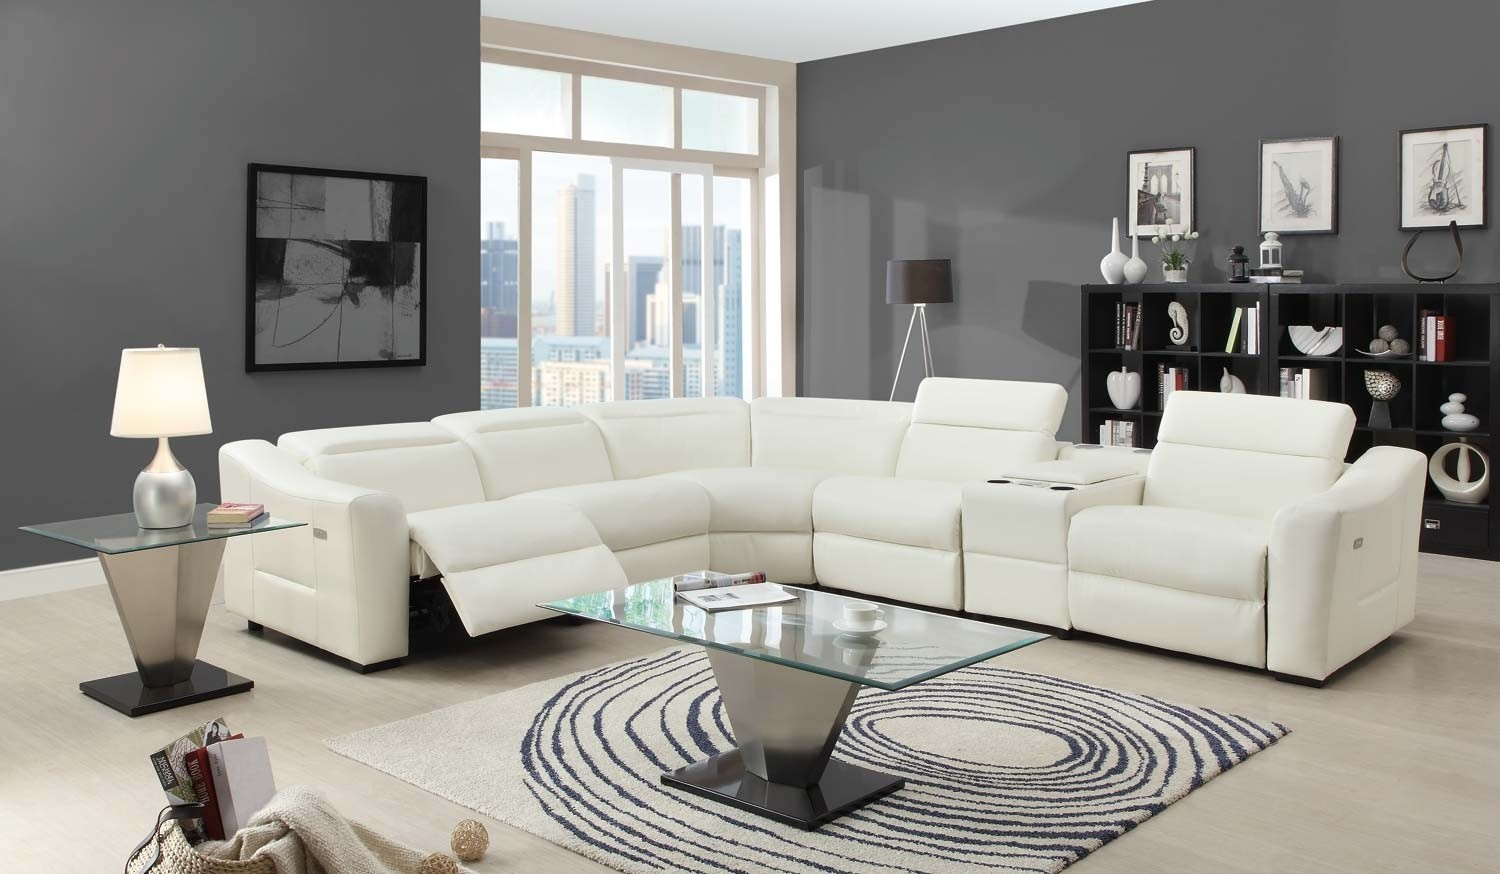 Merveilleux Modern Reclining Sectional   Ideas On Foter